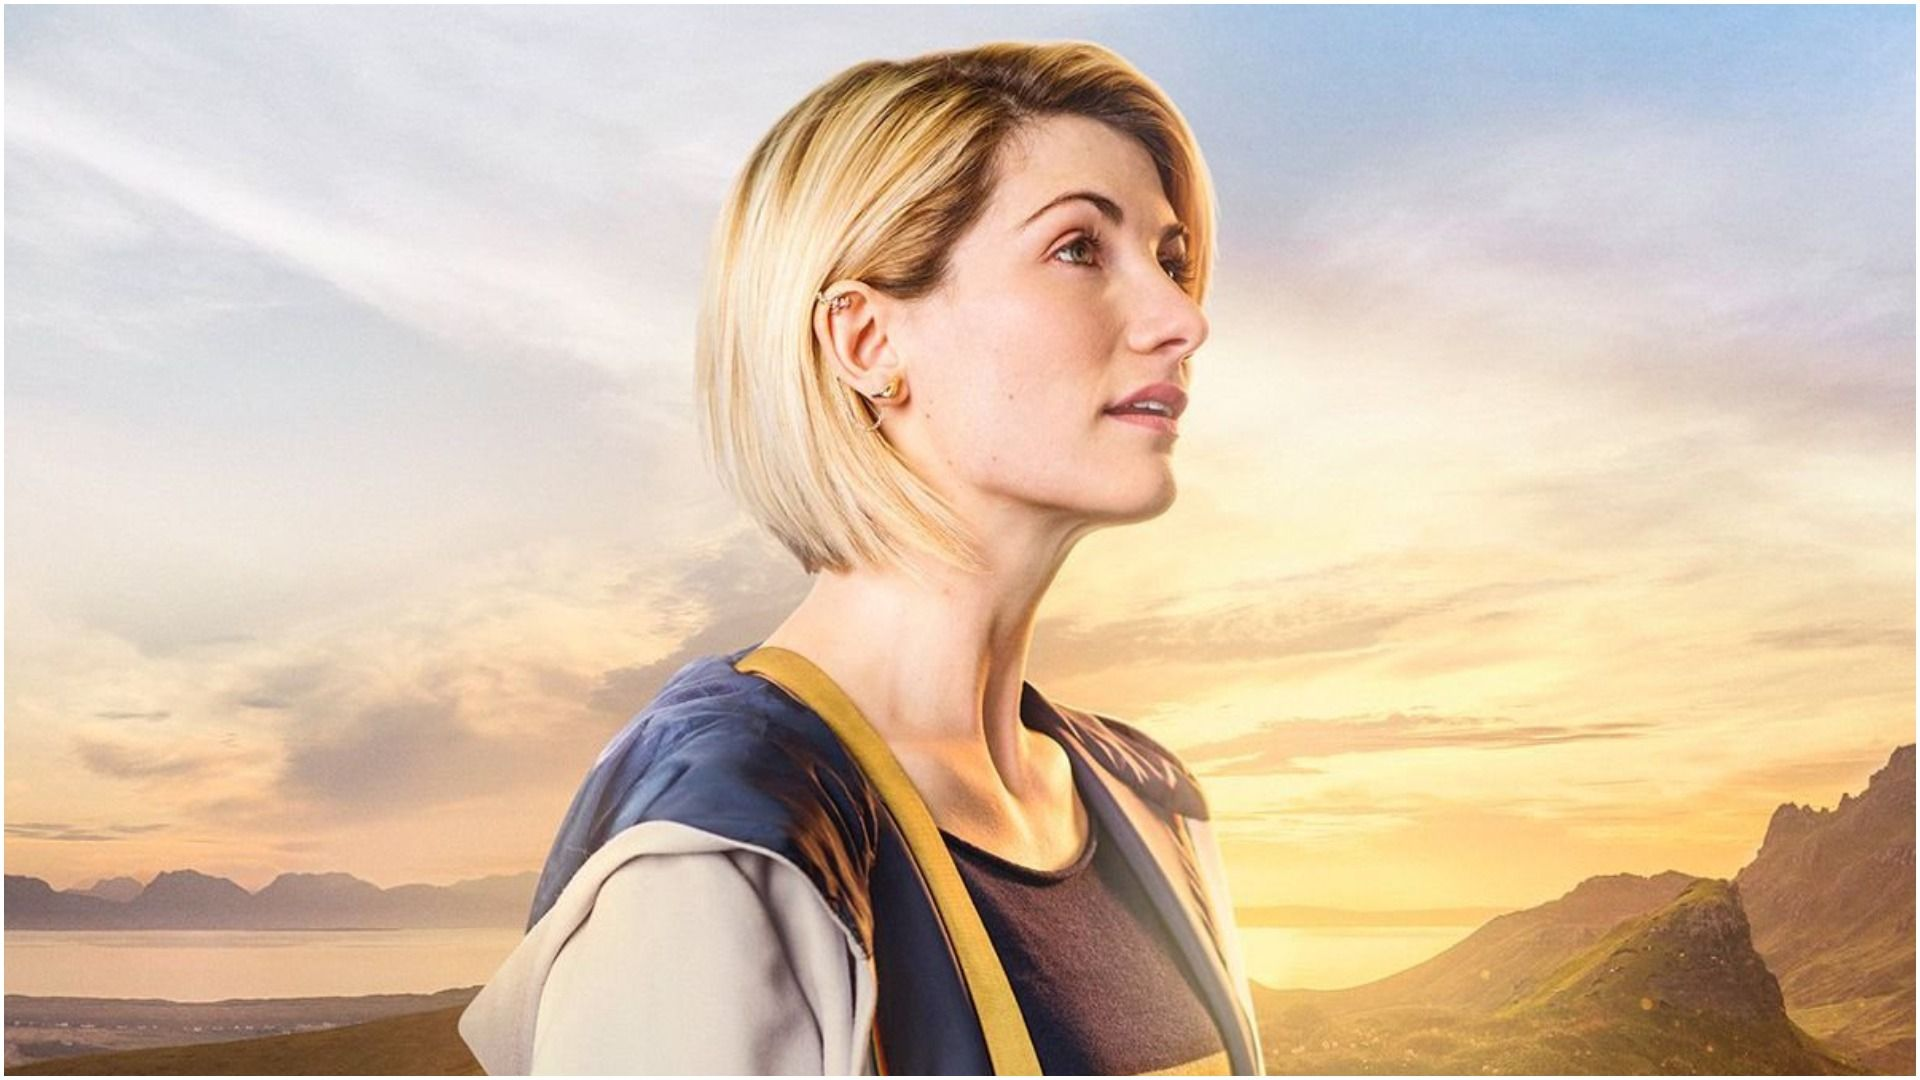 Jodie Whittaker Says Doctor Who Series 11 Is Fizzing With Wonder